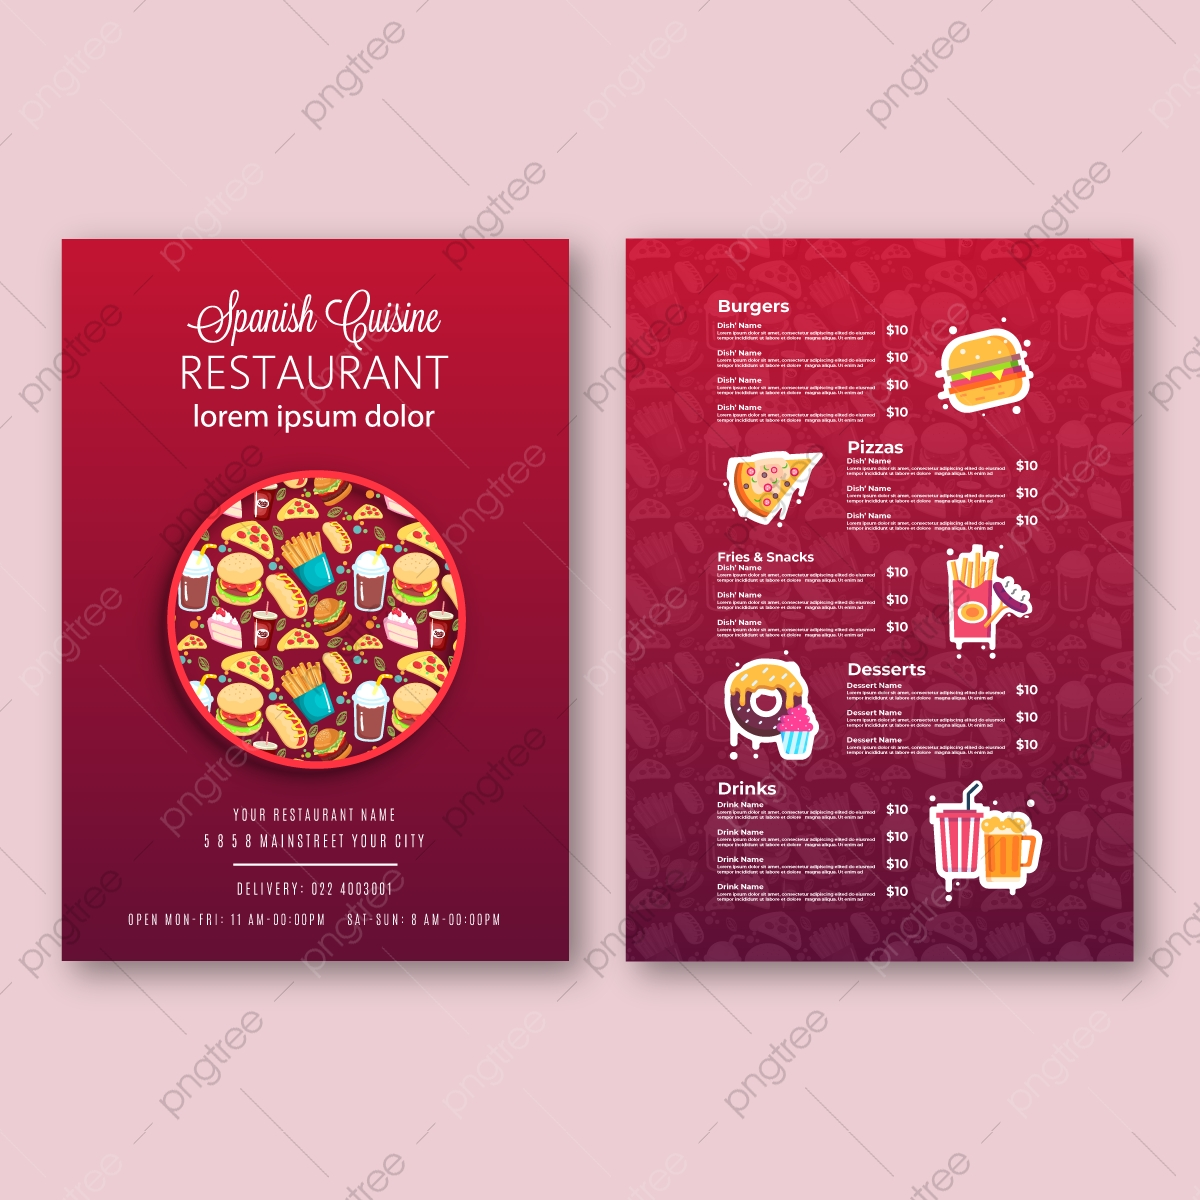 Vector Restaurant Brochure Menu Design Fast Food Menu Brochure Design Vector Template In A4 Size Flyer Baner And Layout Design Food Concept Vector Cafe Template With Hand Drawn Graphic Food Flyer Template